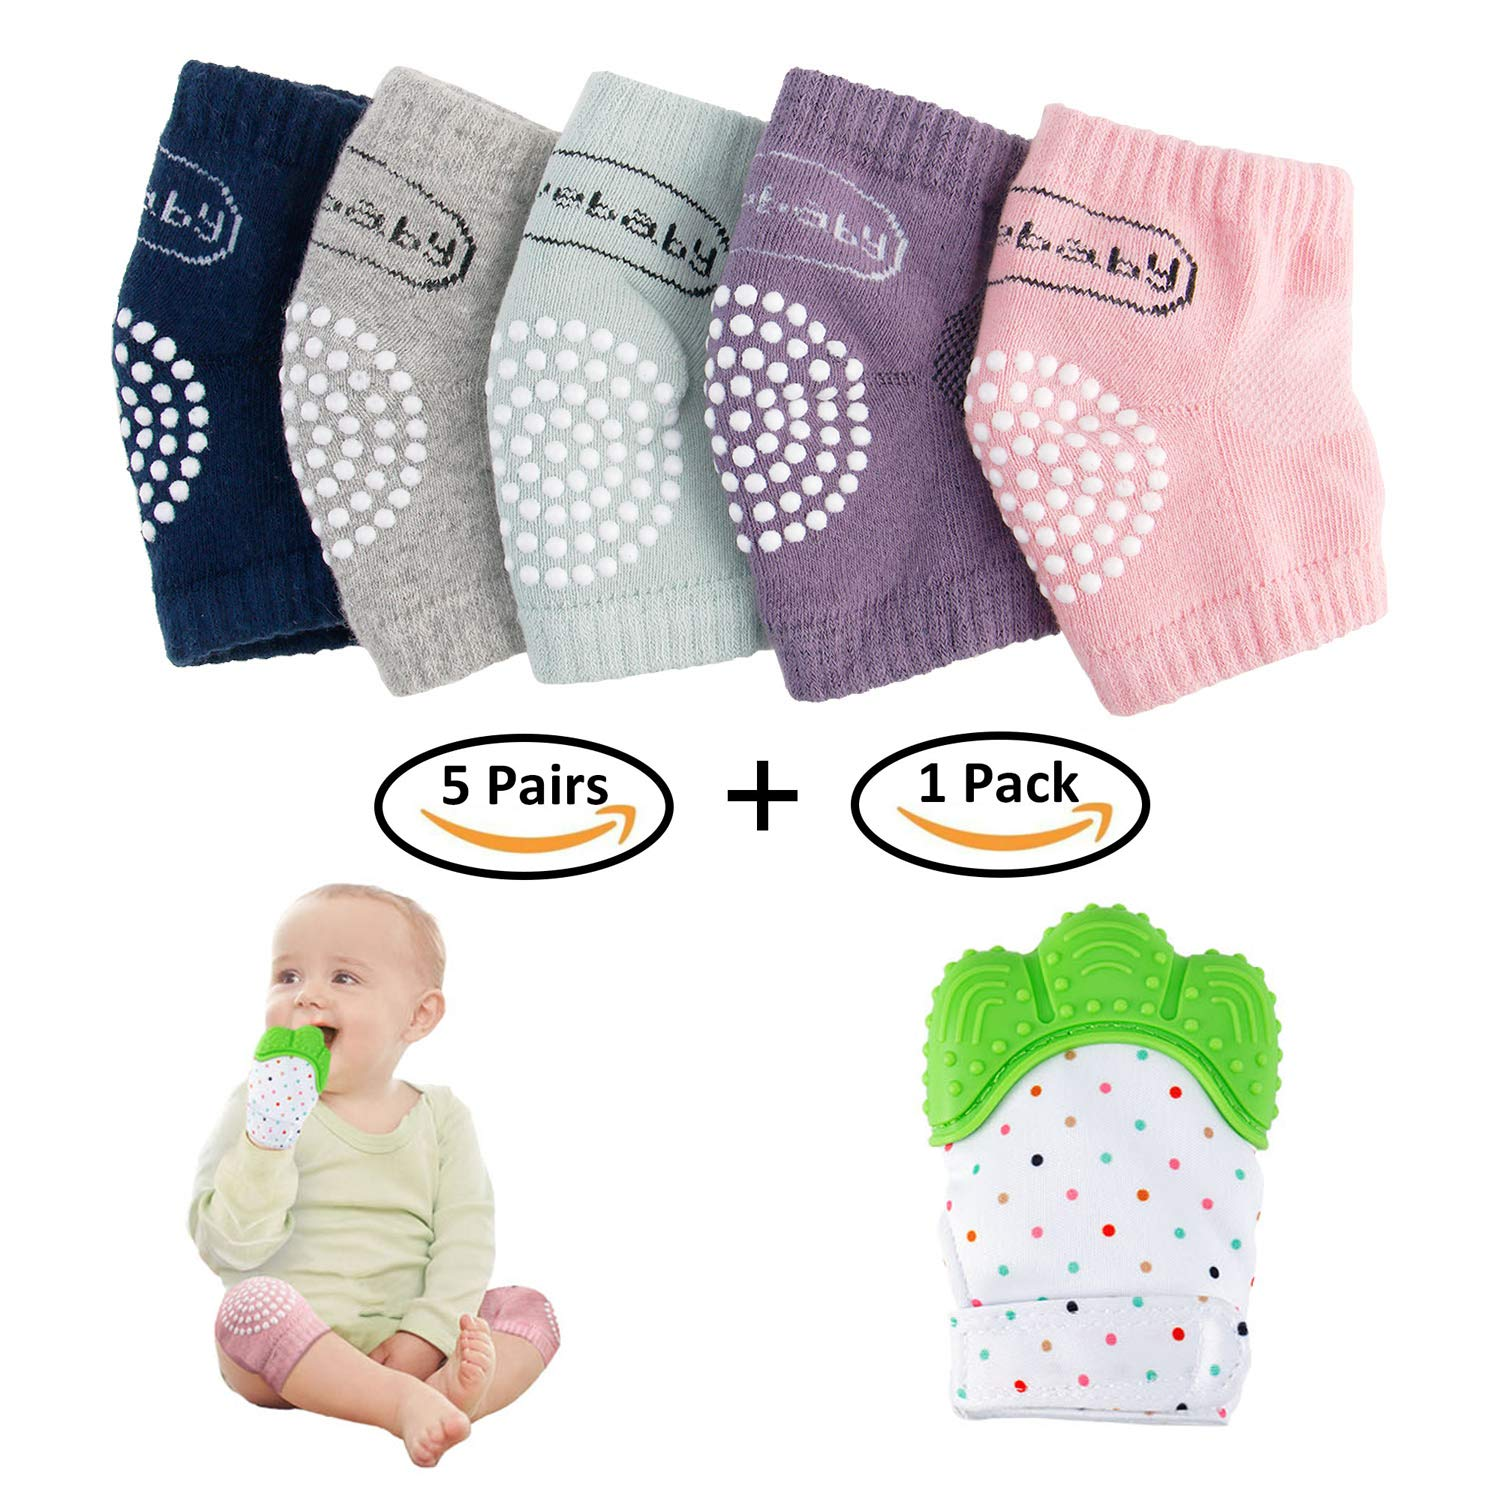 NASHRIO Baby Knee Pads for Crawling (5 Pairs) and Baby Teething Mitten (1 Pack), Elastic Anti-Slip and Protect Infants & Toddlers Knees, Elbows and Legs for Boys and Girls (Unisex)